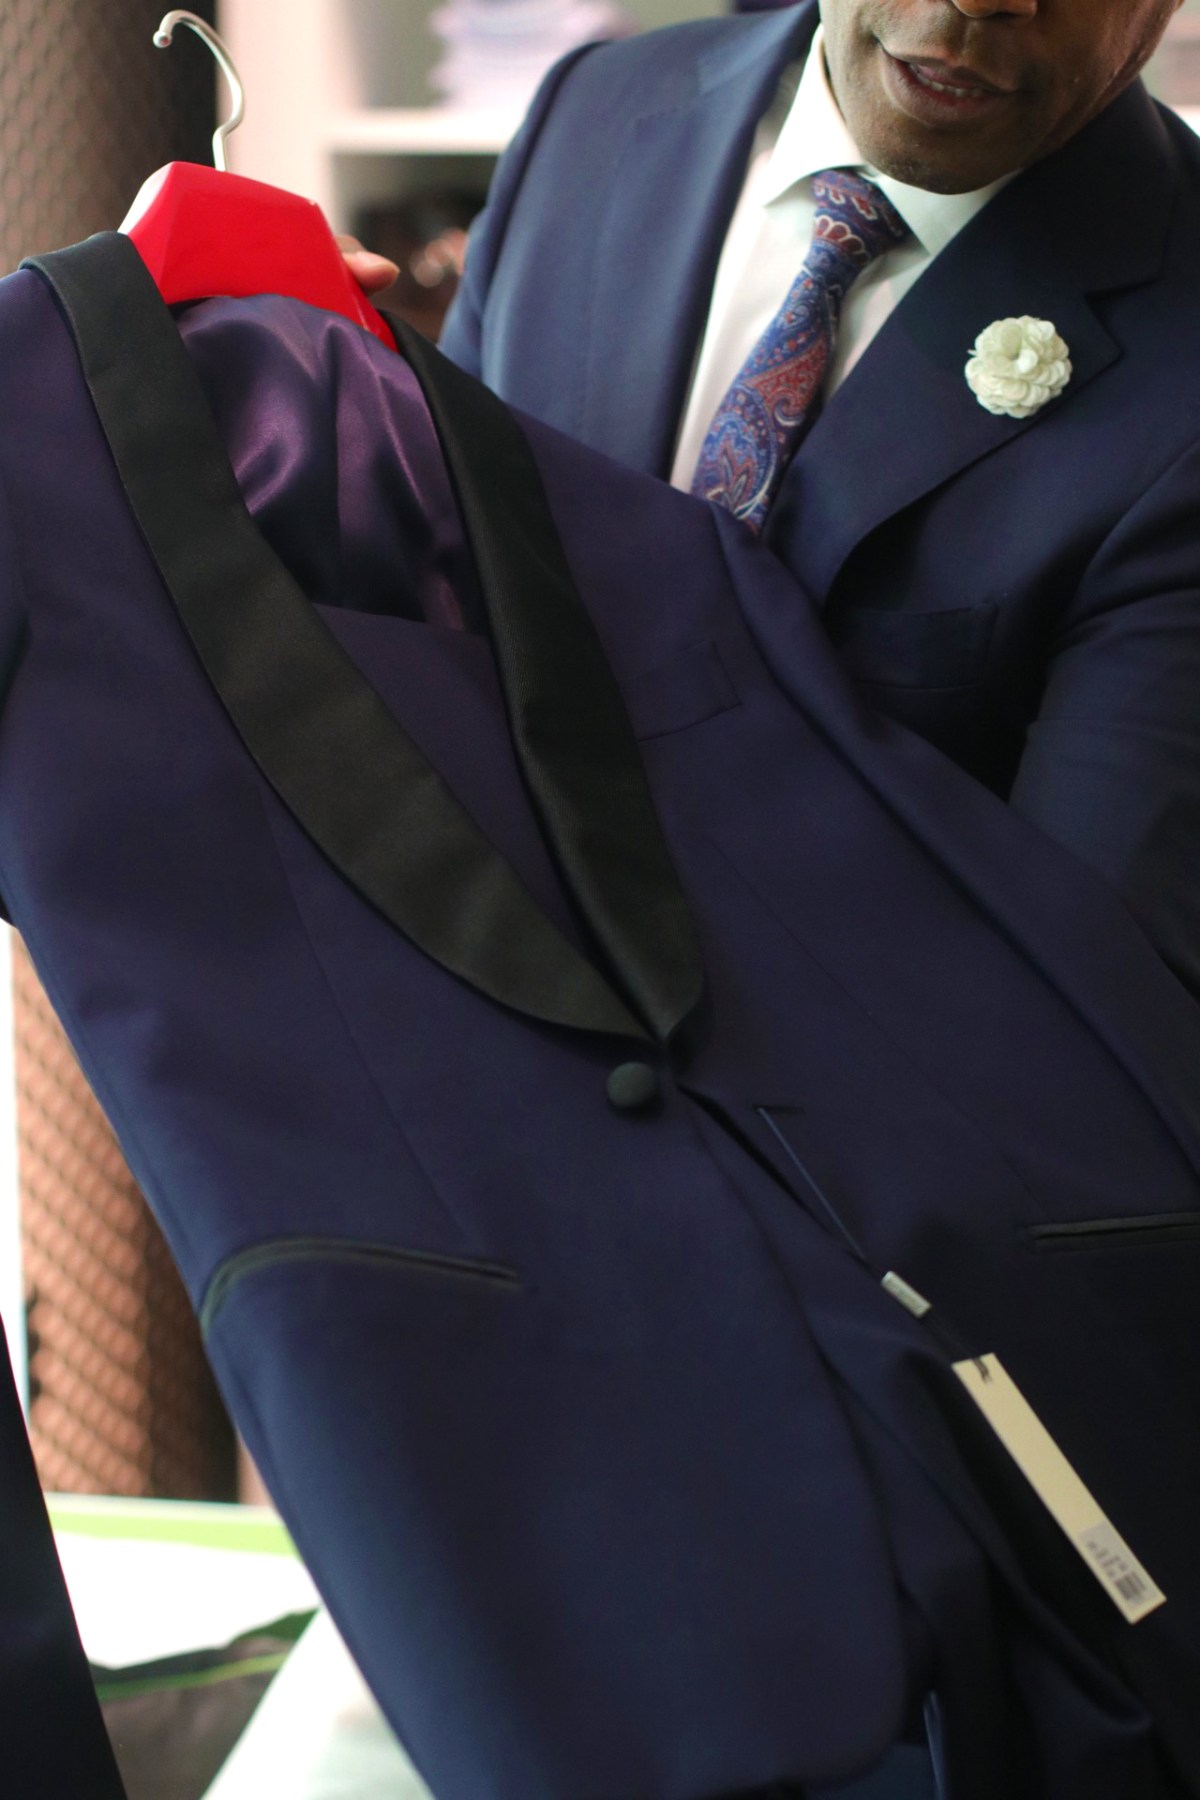 Holiday Attire for Men Suit Supply Tuxedo